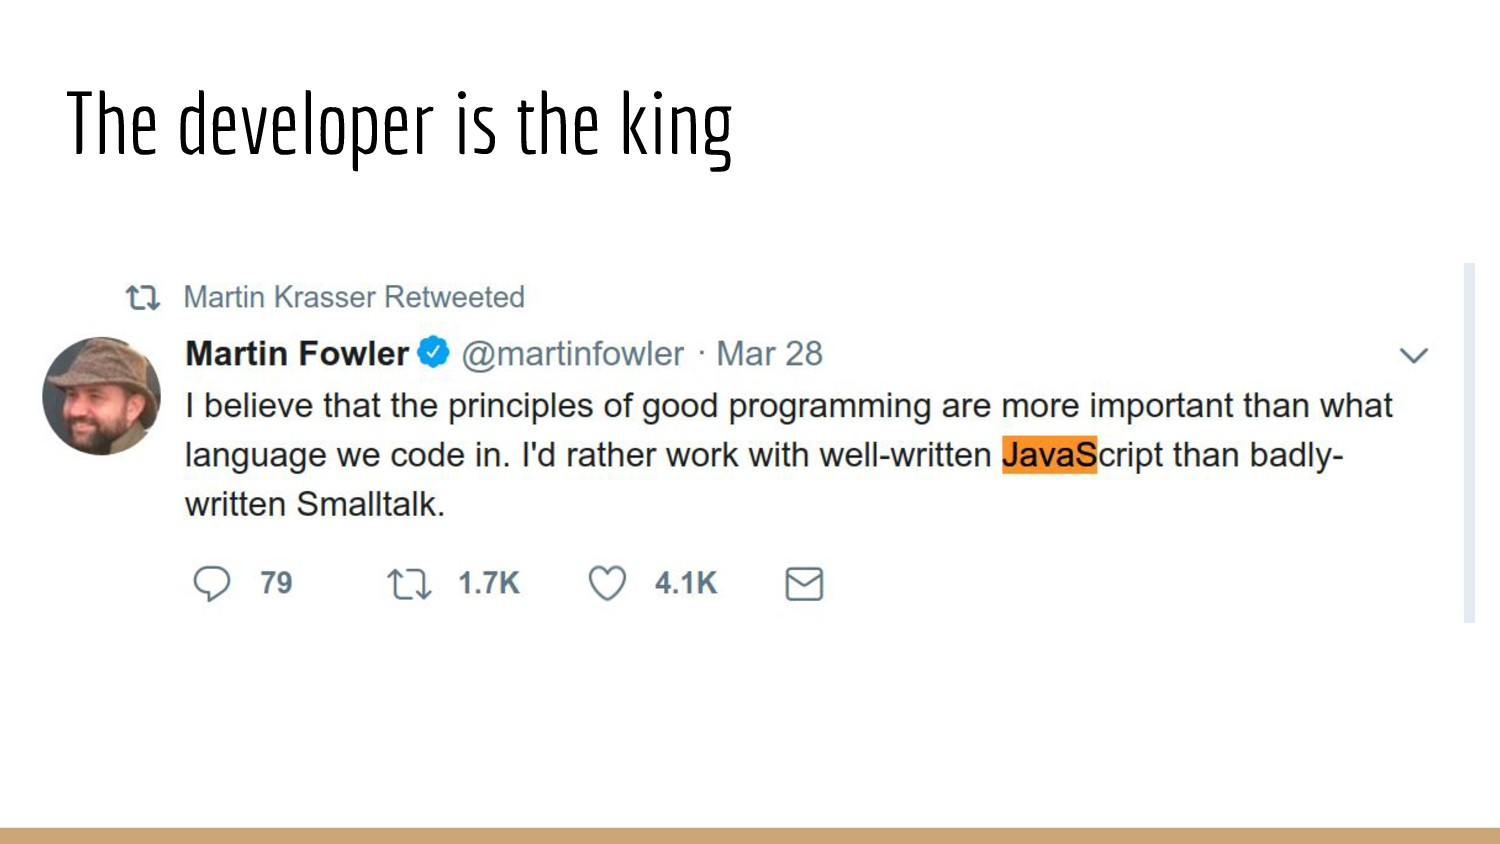 The developer is the king